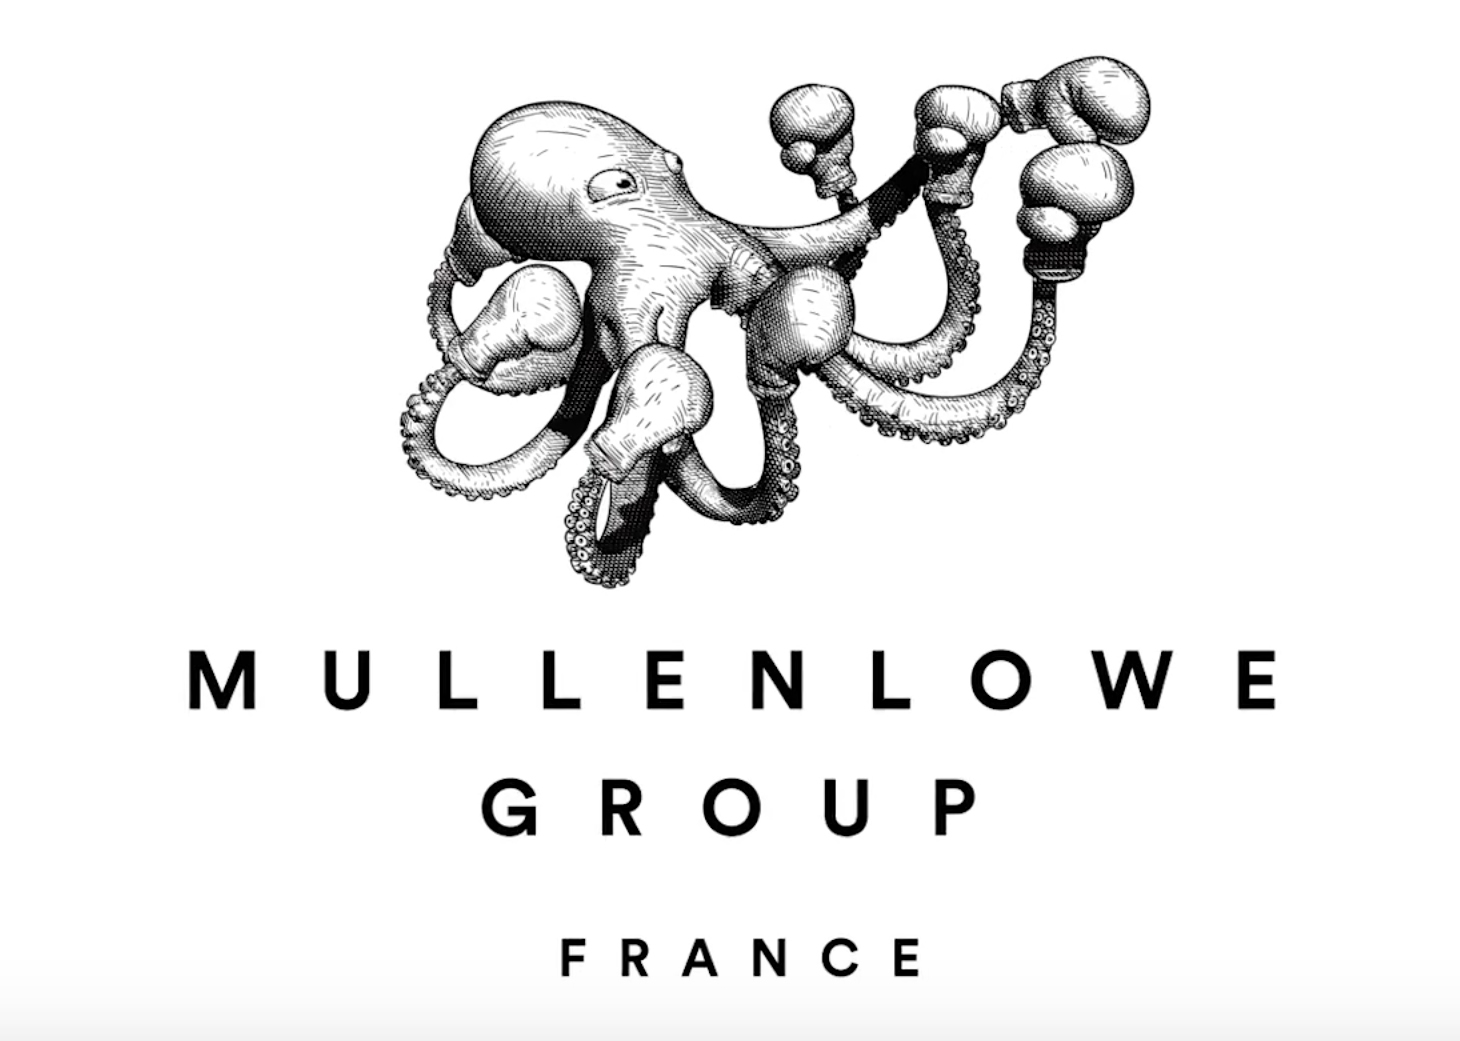 logo-mullenlowe-group-france-2016